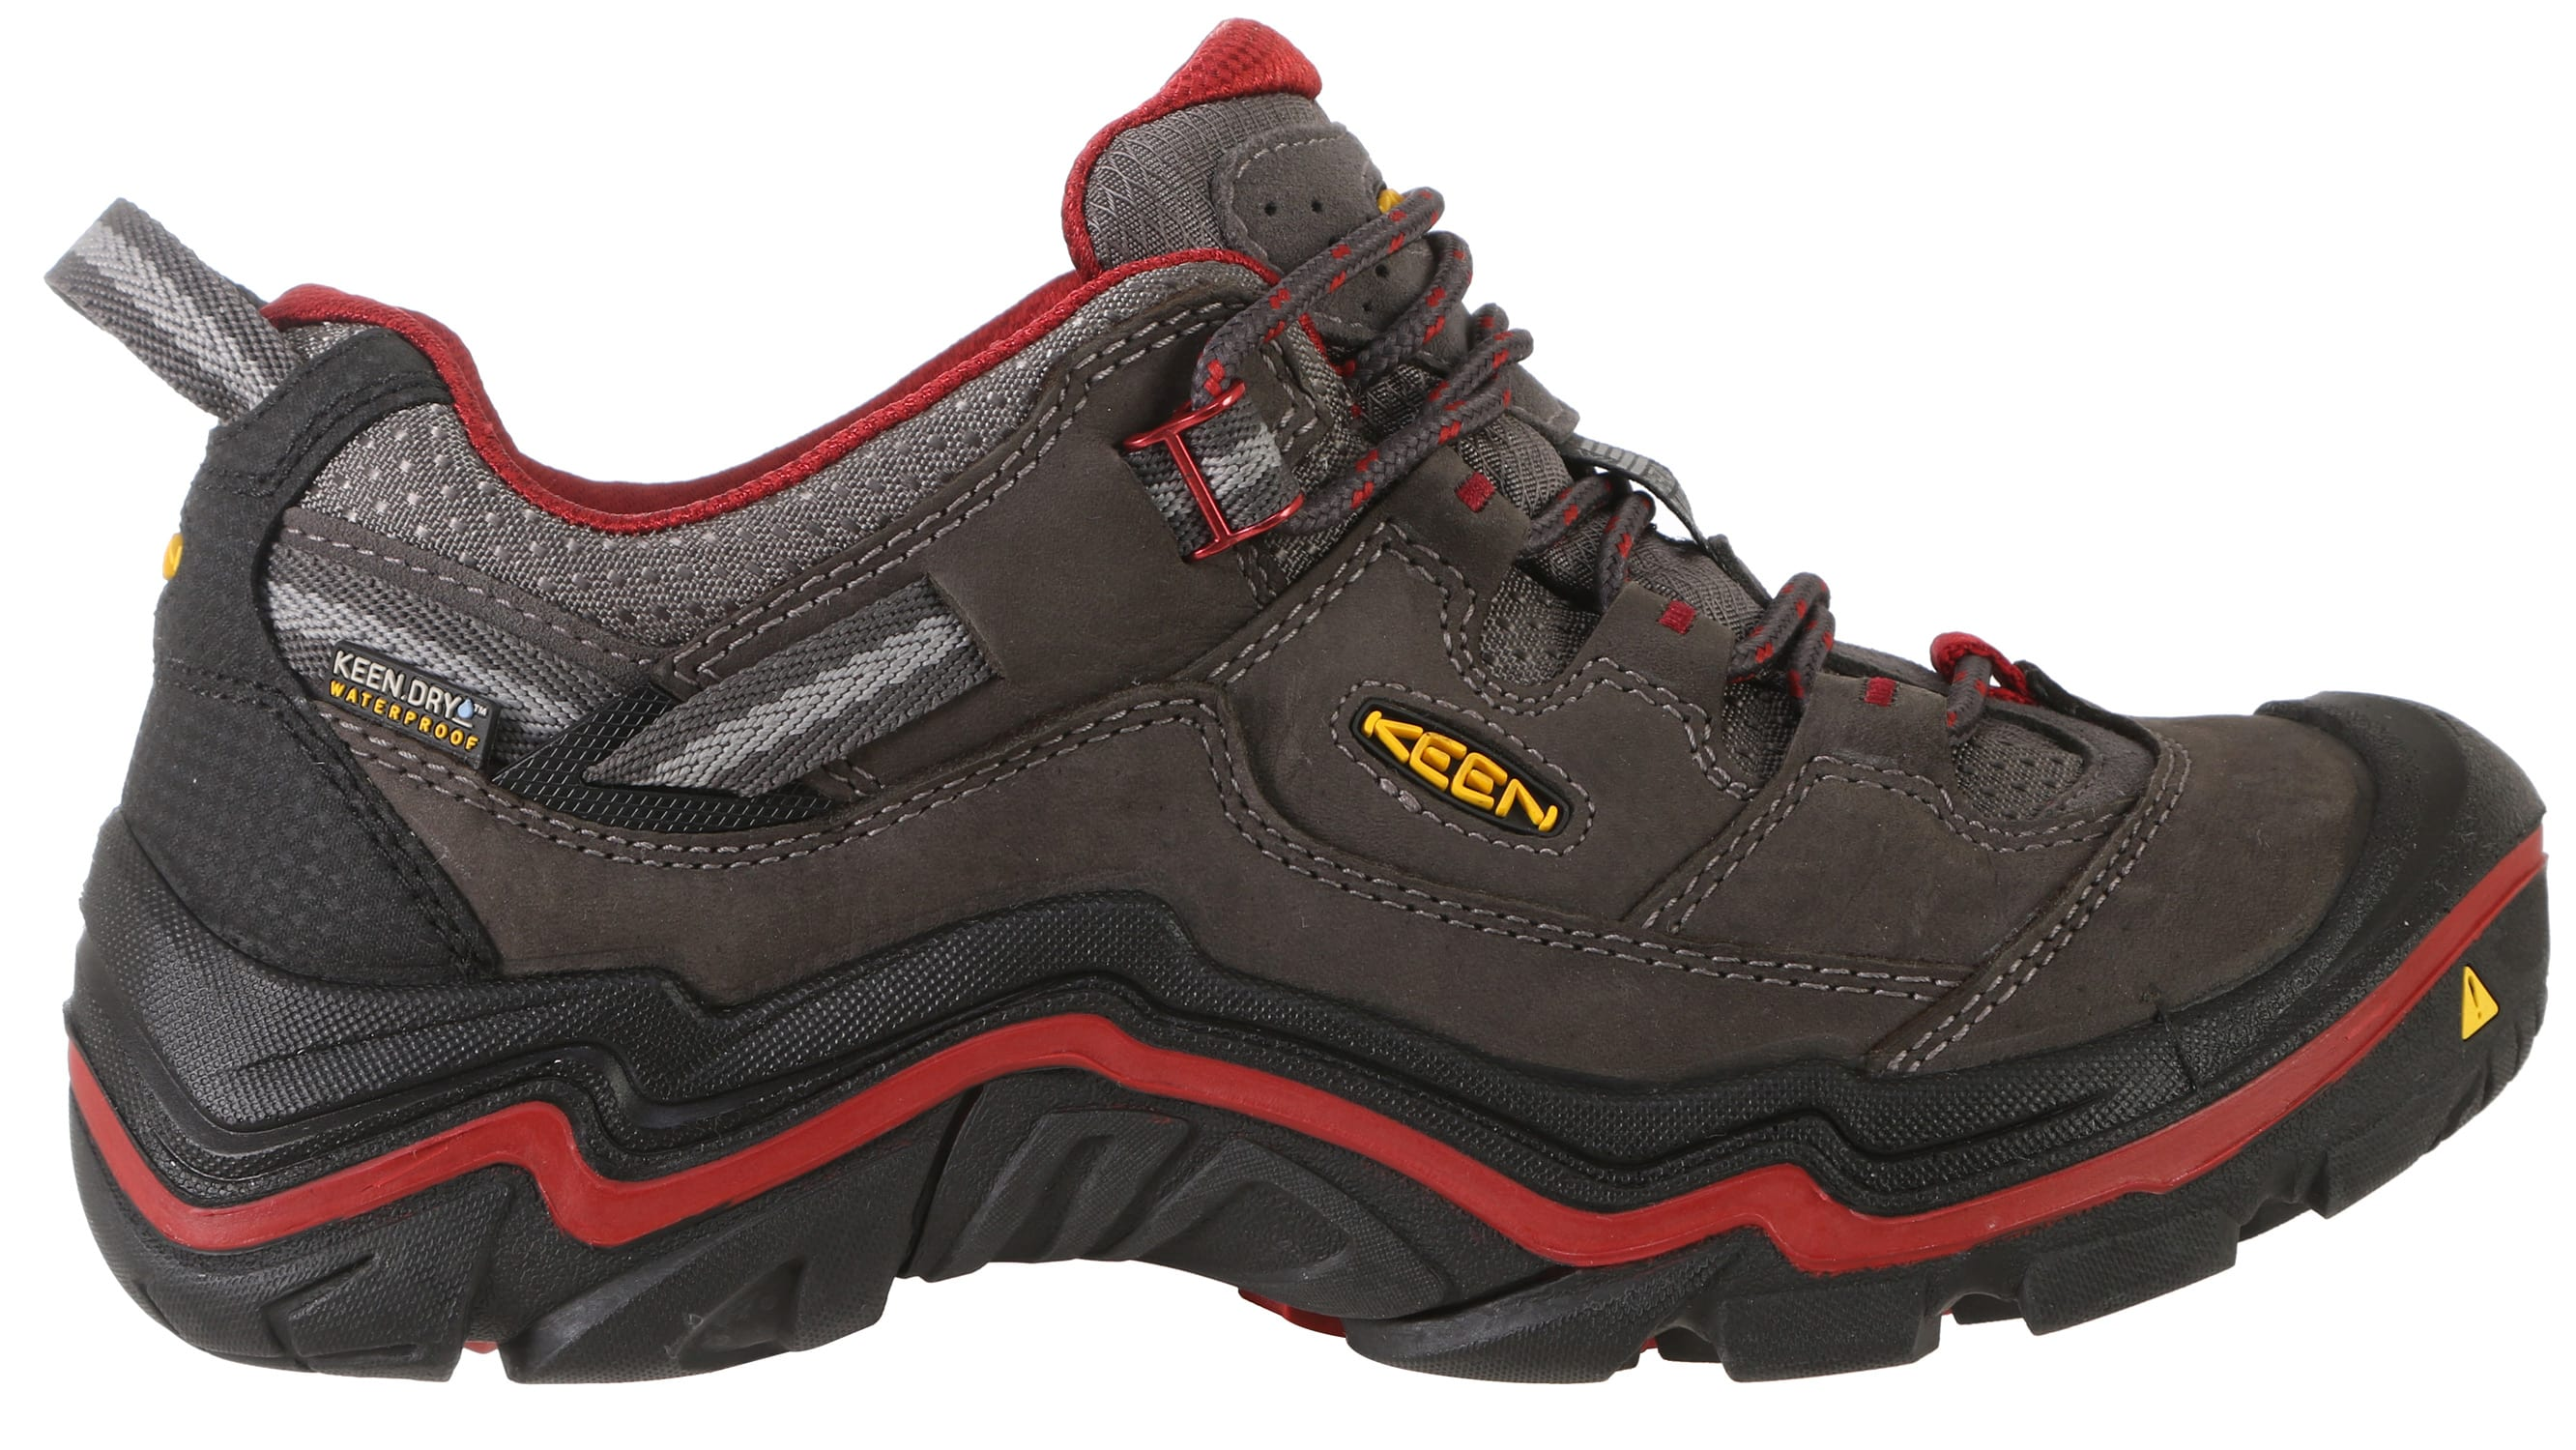 760c042bf12 Keen Durand Low WP Hiking Shoes - Womens